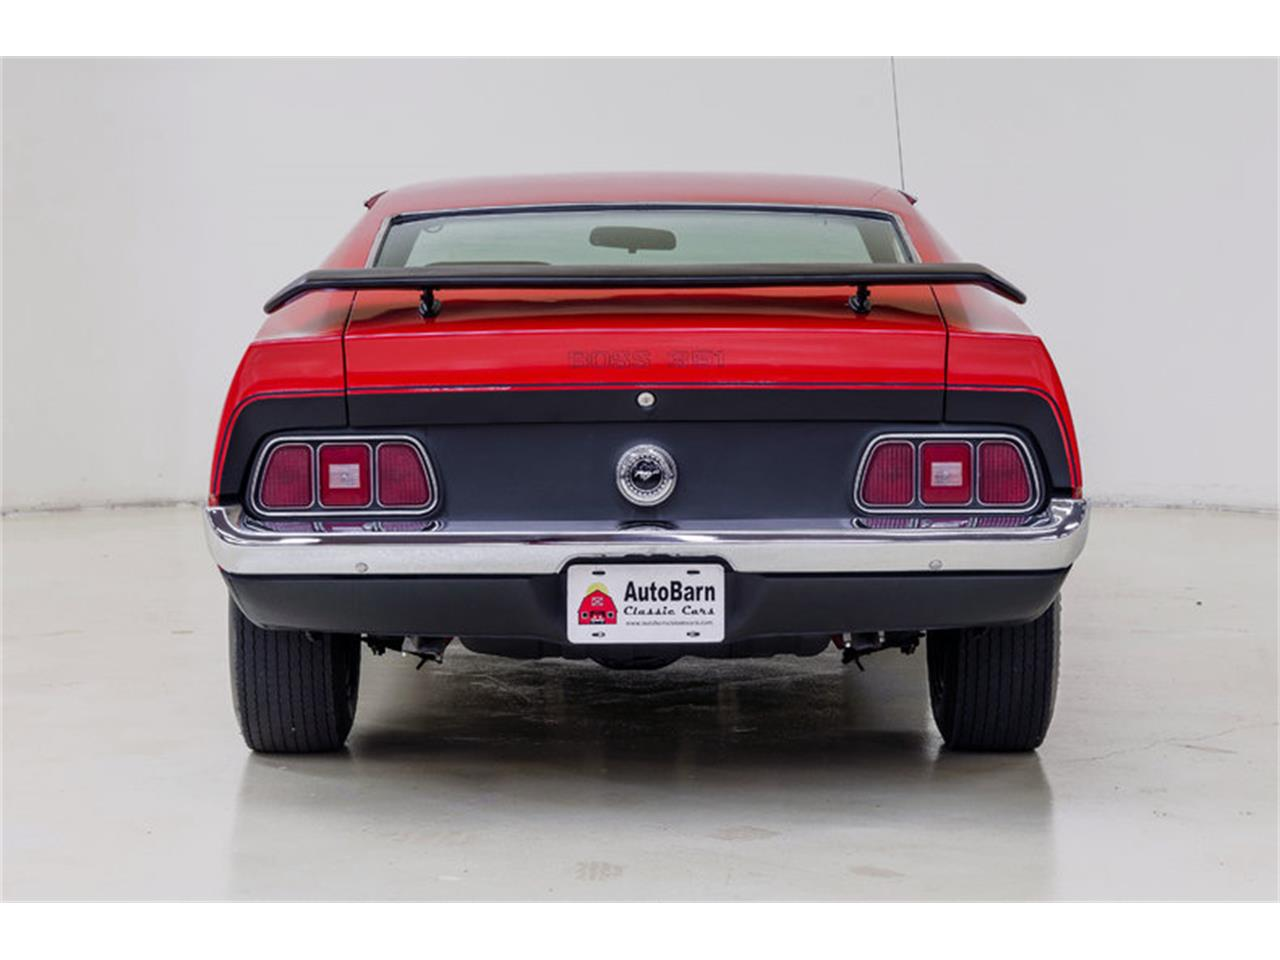 Large Picture of 1971 Ford Mustang Boss located in North Carolina - $72,995.00 Offered by Autobarn Classic Cars - LWKK